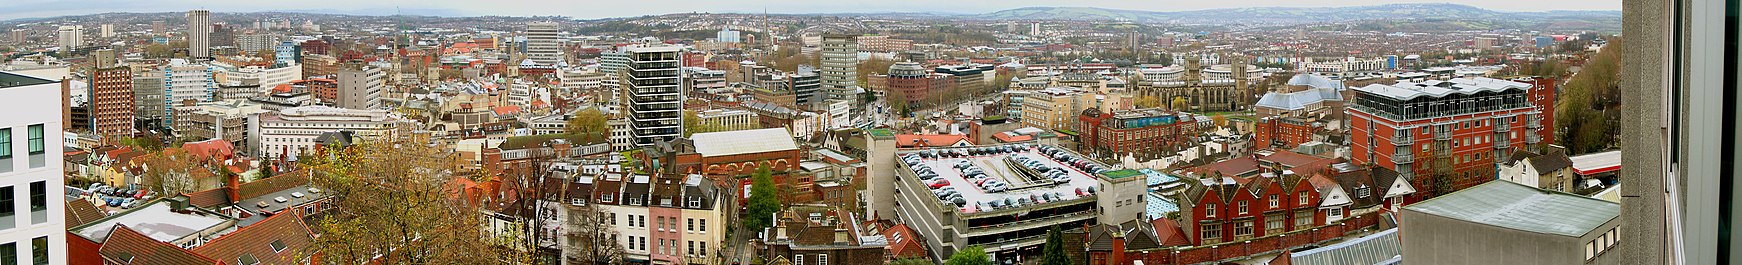 A panoramic view looking over a cityscape of office blocks, old buildings, church spires and a multi-story car park. In the distance are hills.